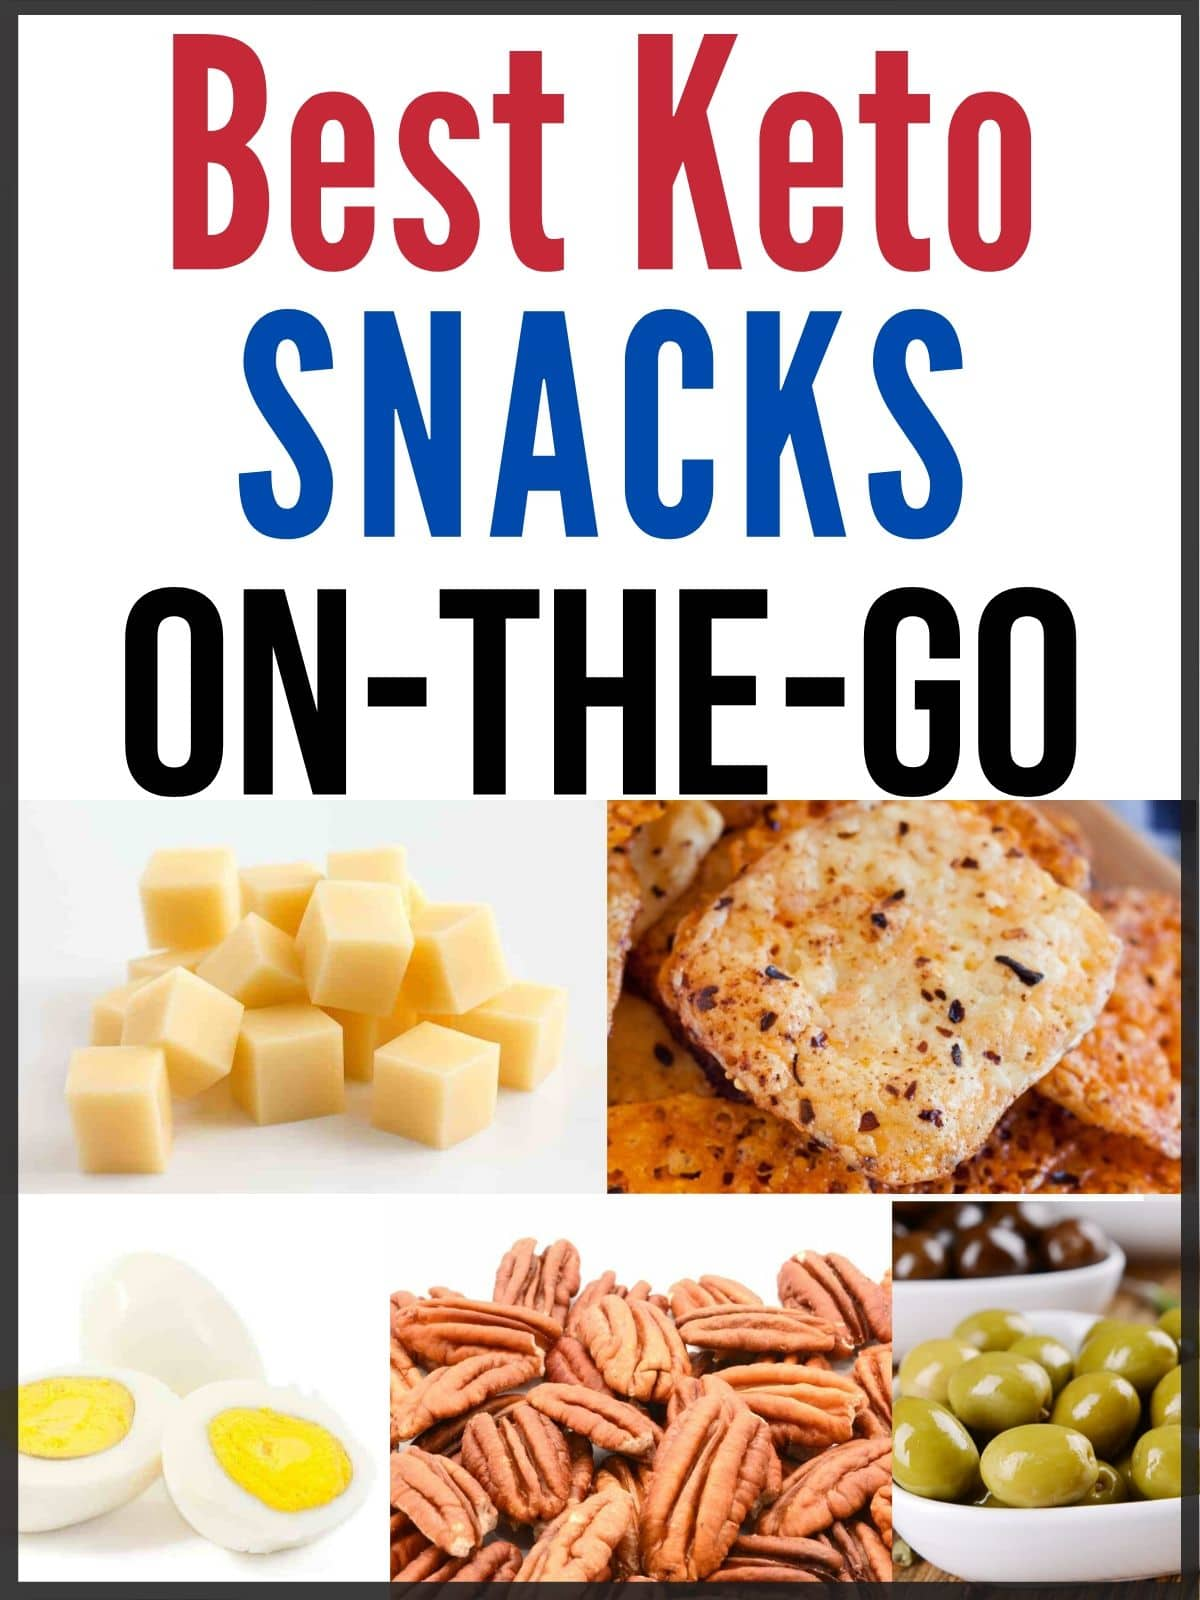 collage of keto snack ideas and text on the image